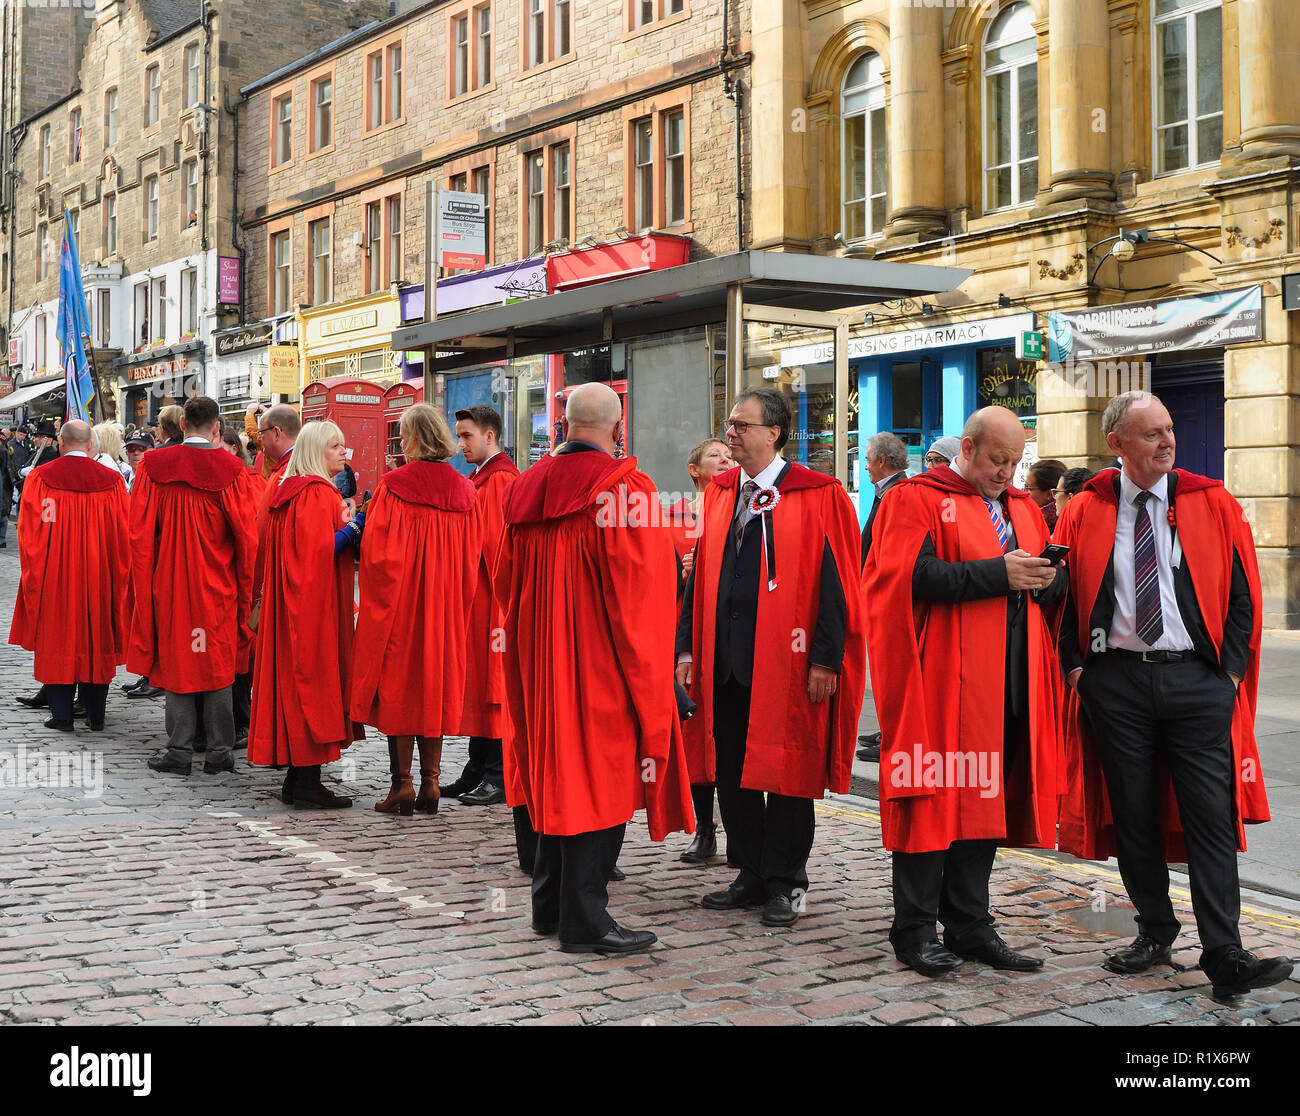 Marchers in red academic gowns on the Riding of the Marches, Edinburgh, Scotland - Stock Image